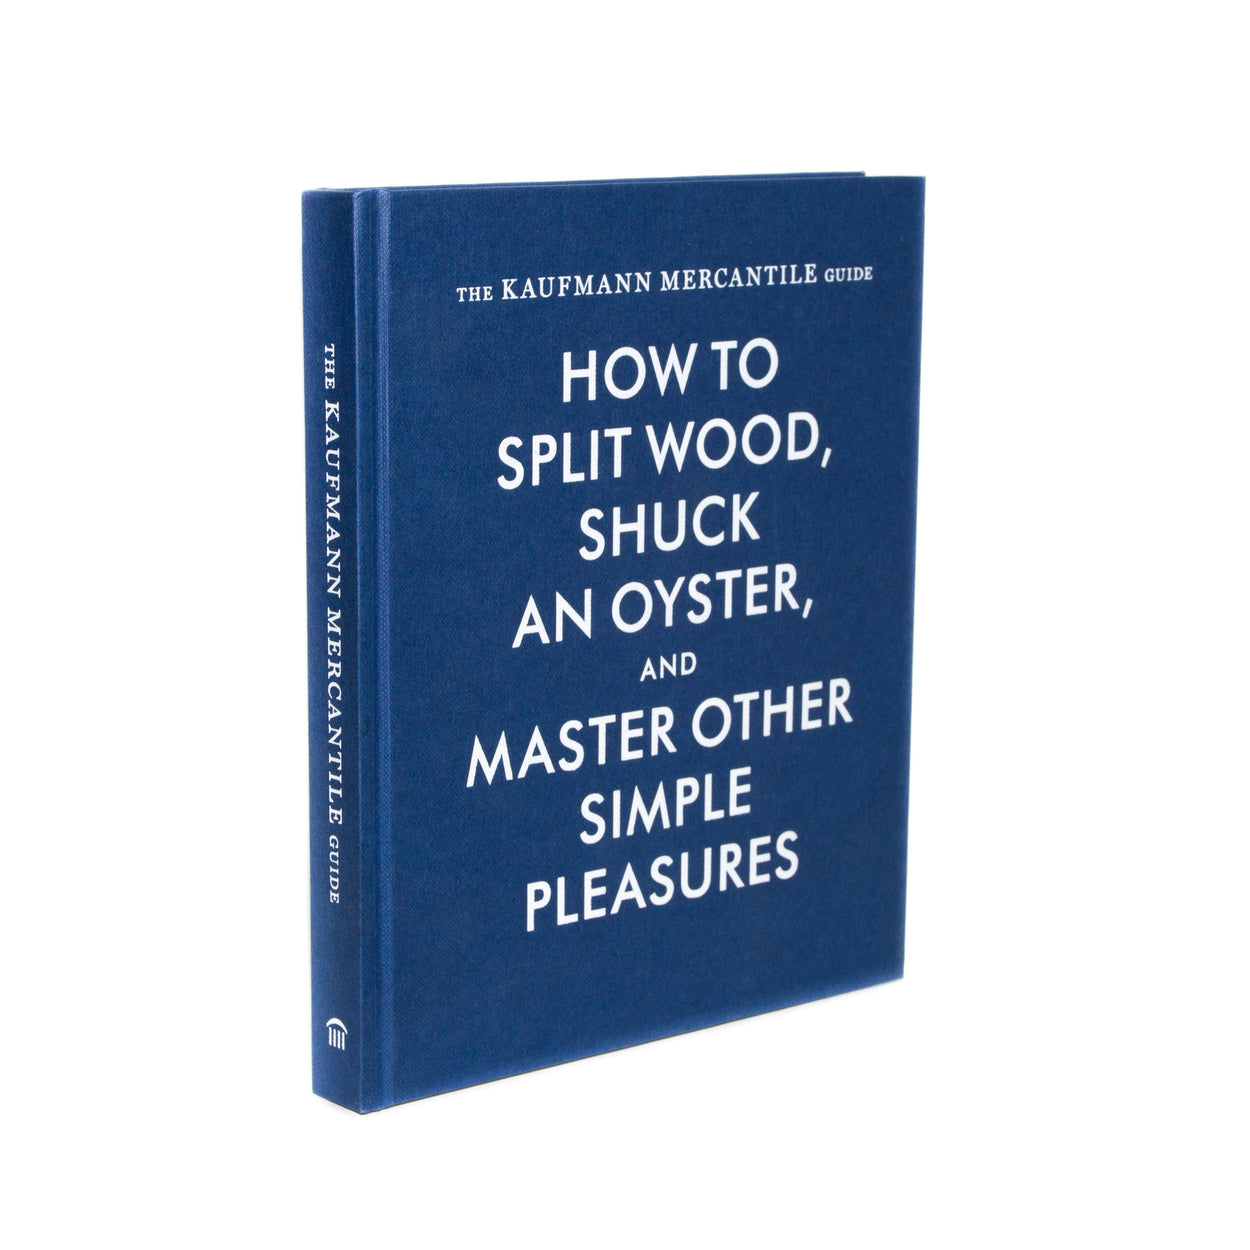 The Kaufmann Mercantile Guide: How to Split Wood, Shuck an Oyster and Master Other Simple Pleasures - Langsom